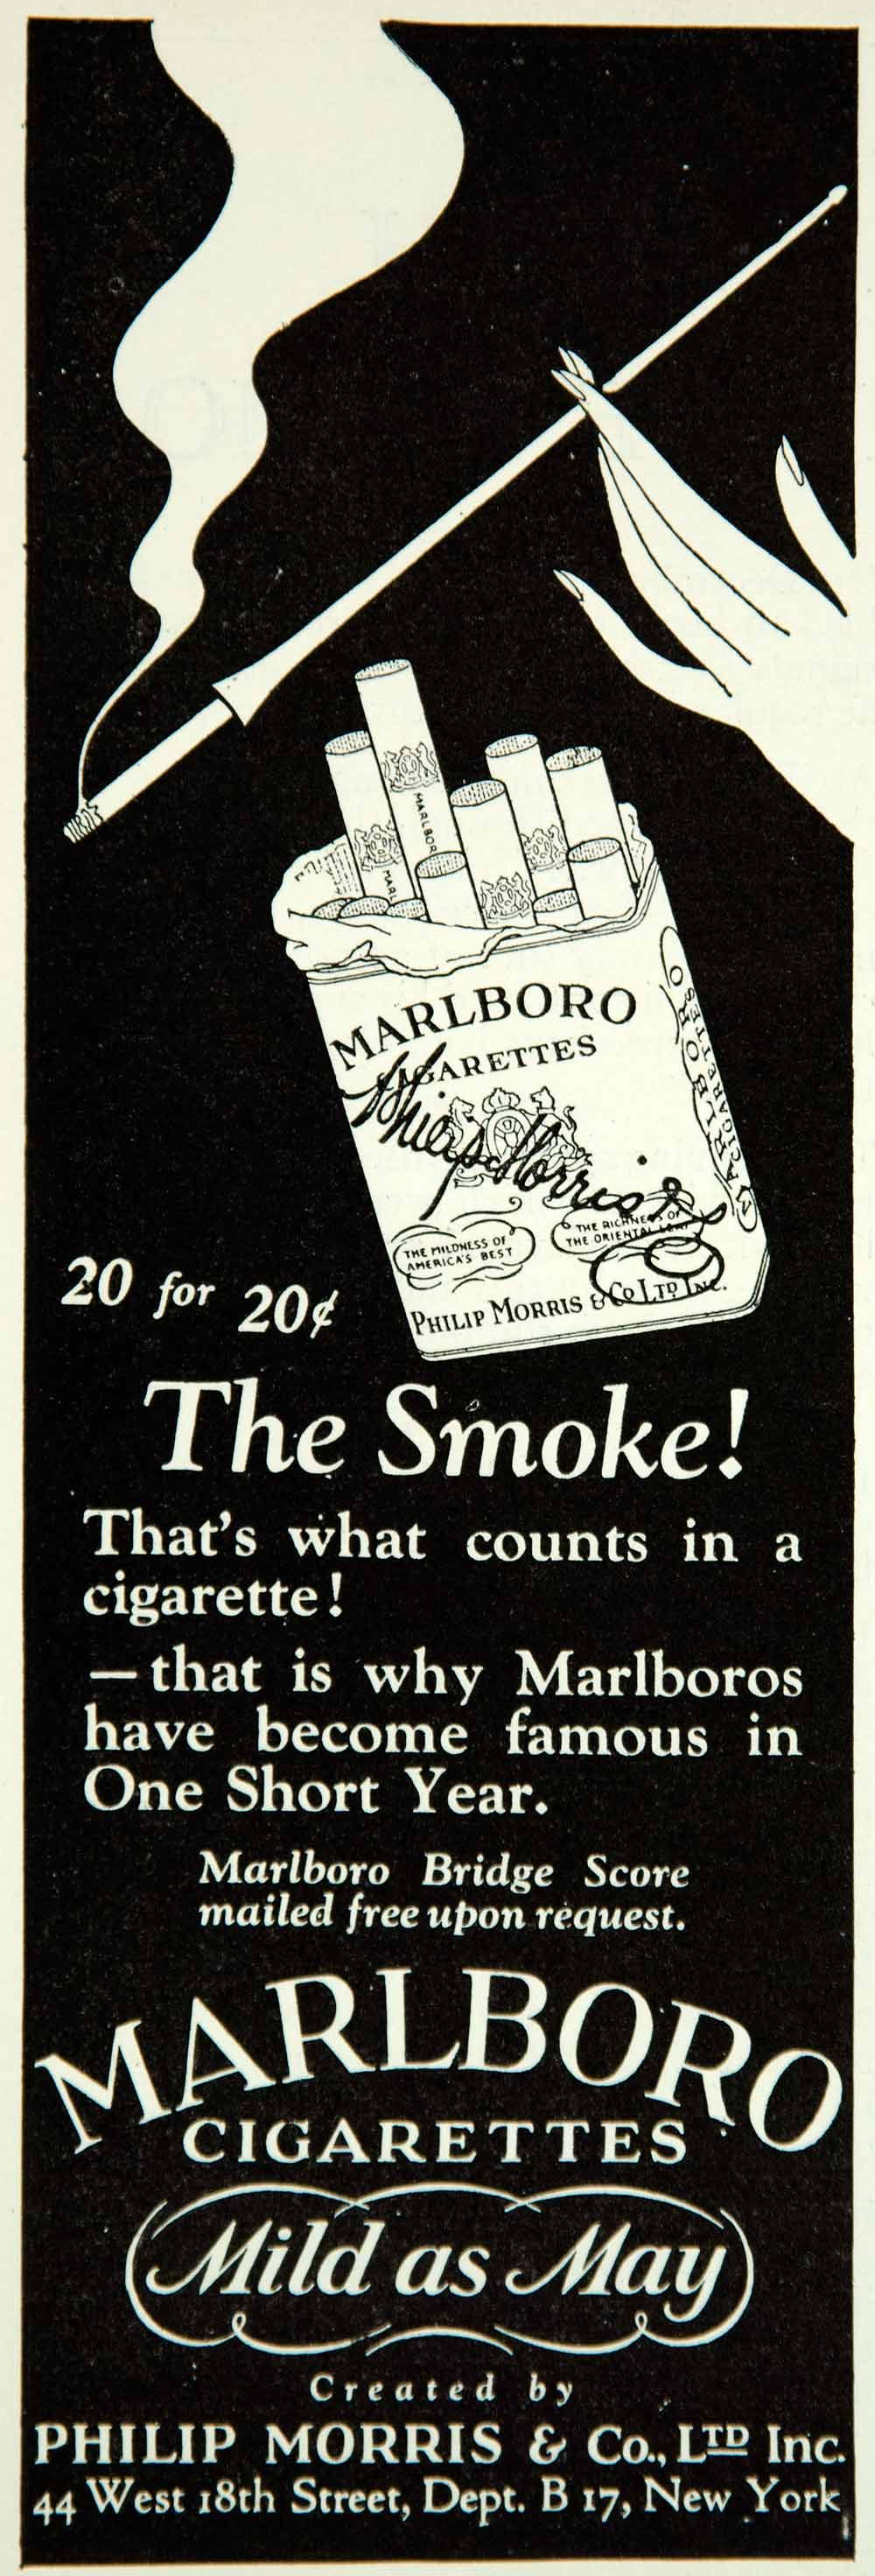 How much are Salem cigarettes in New Jersey